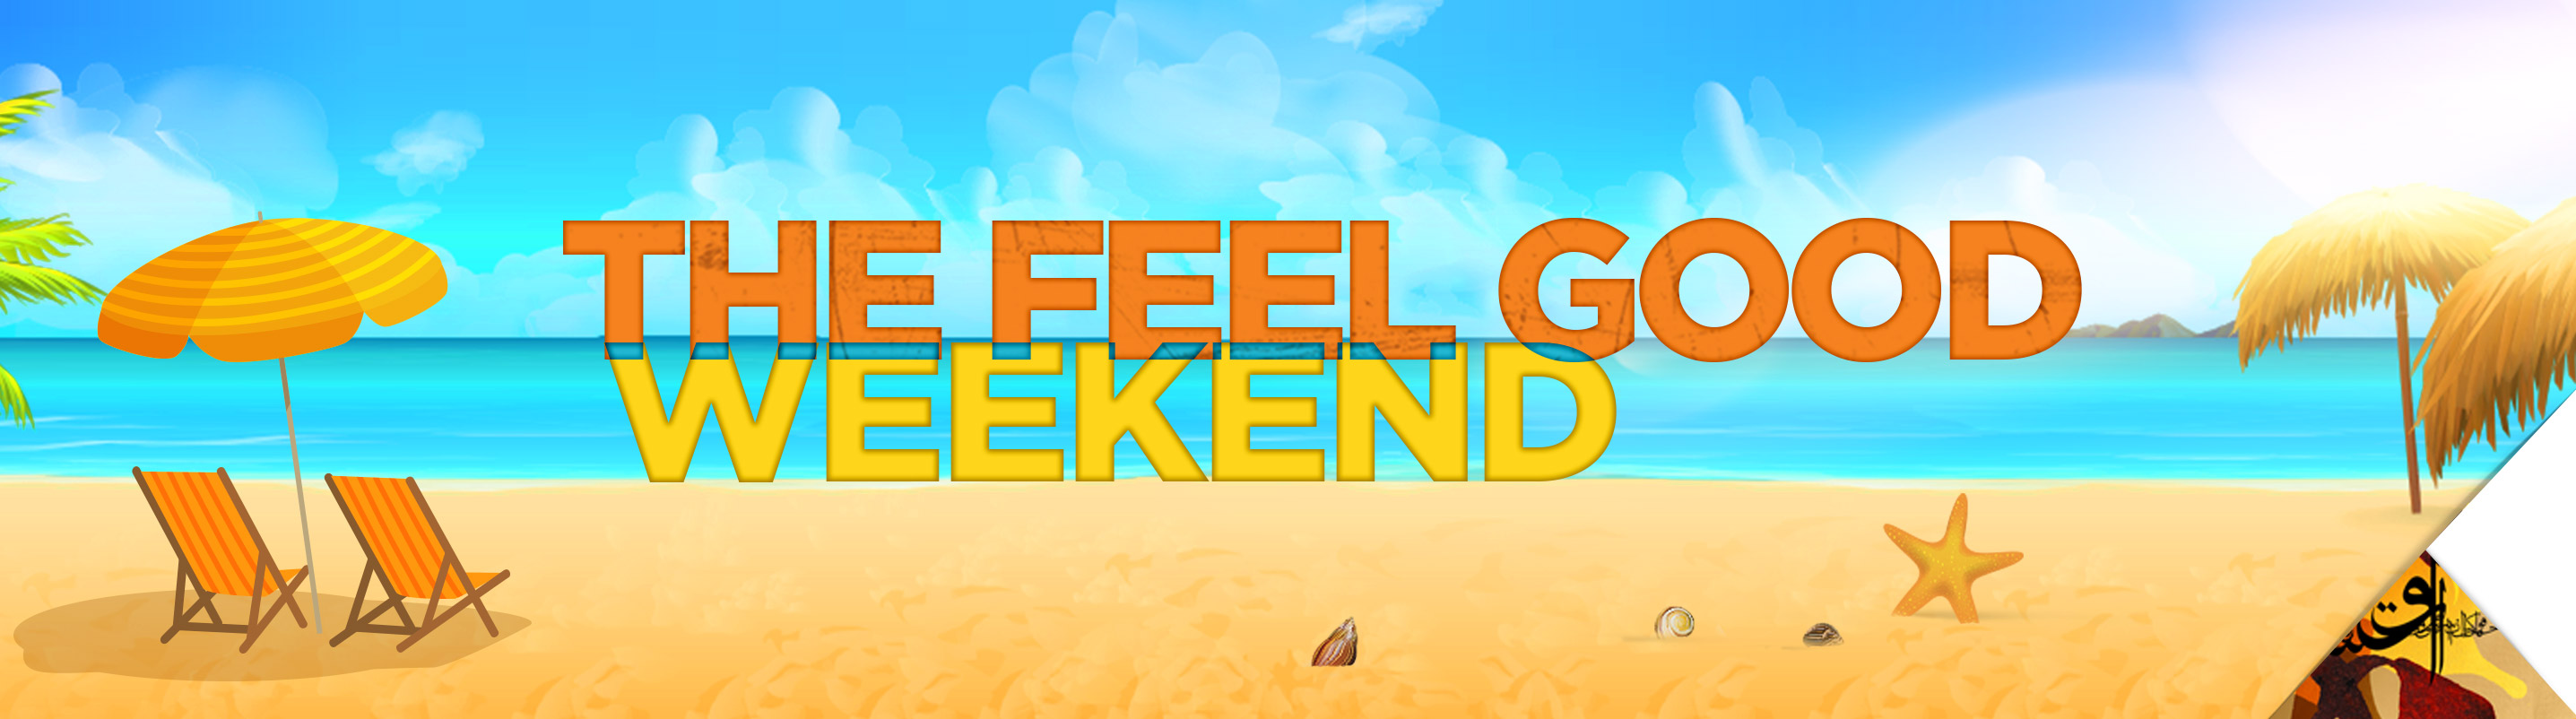 THE FEEL GOOD WEEKEND